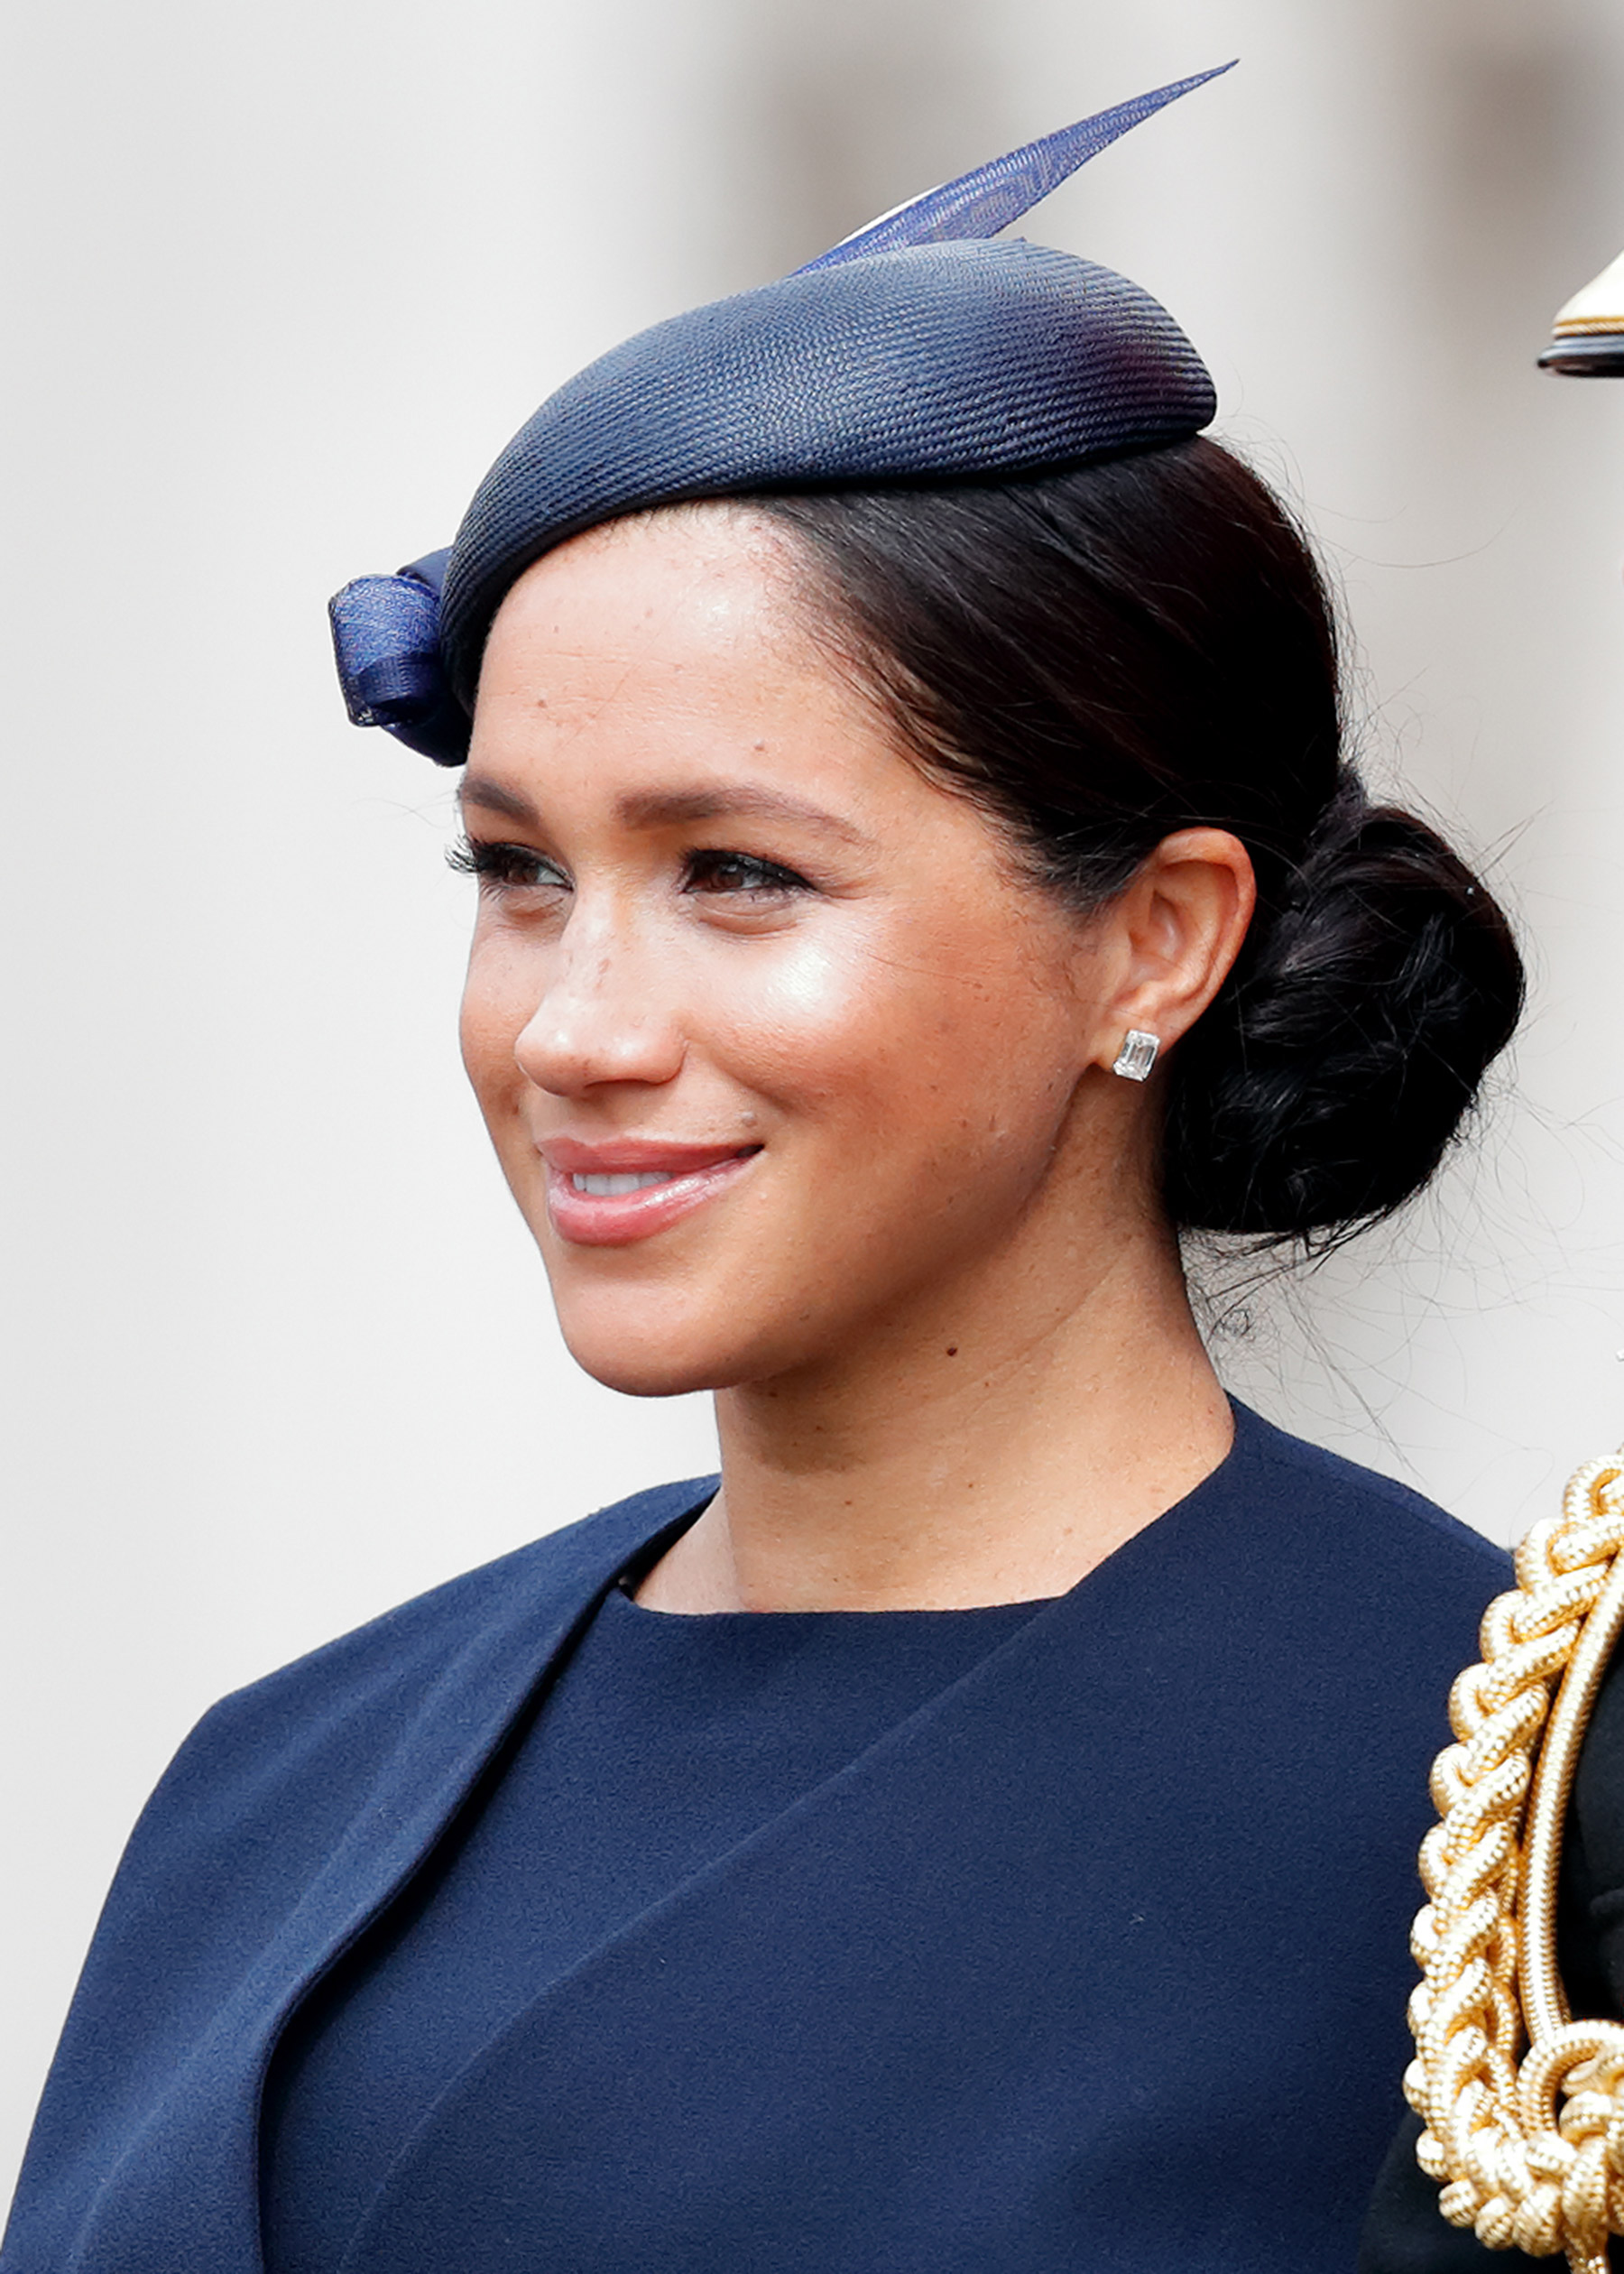 Meghan Markle and Prince Harry Named to Time's List of Most Influential People on the Internet